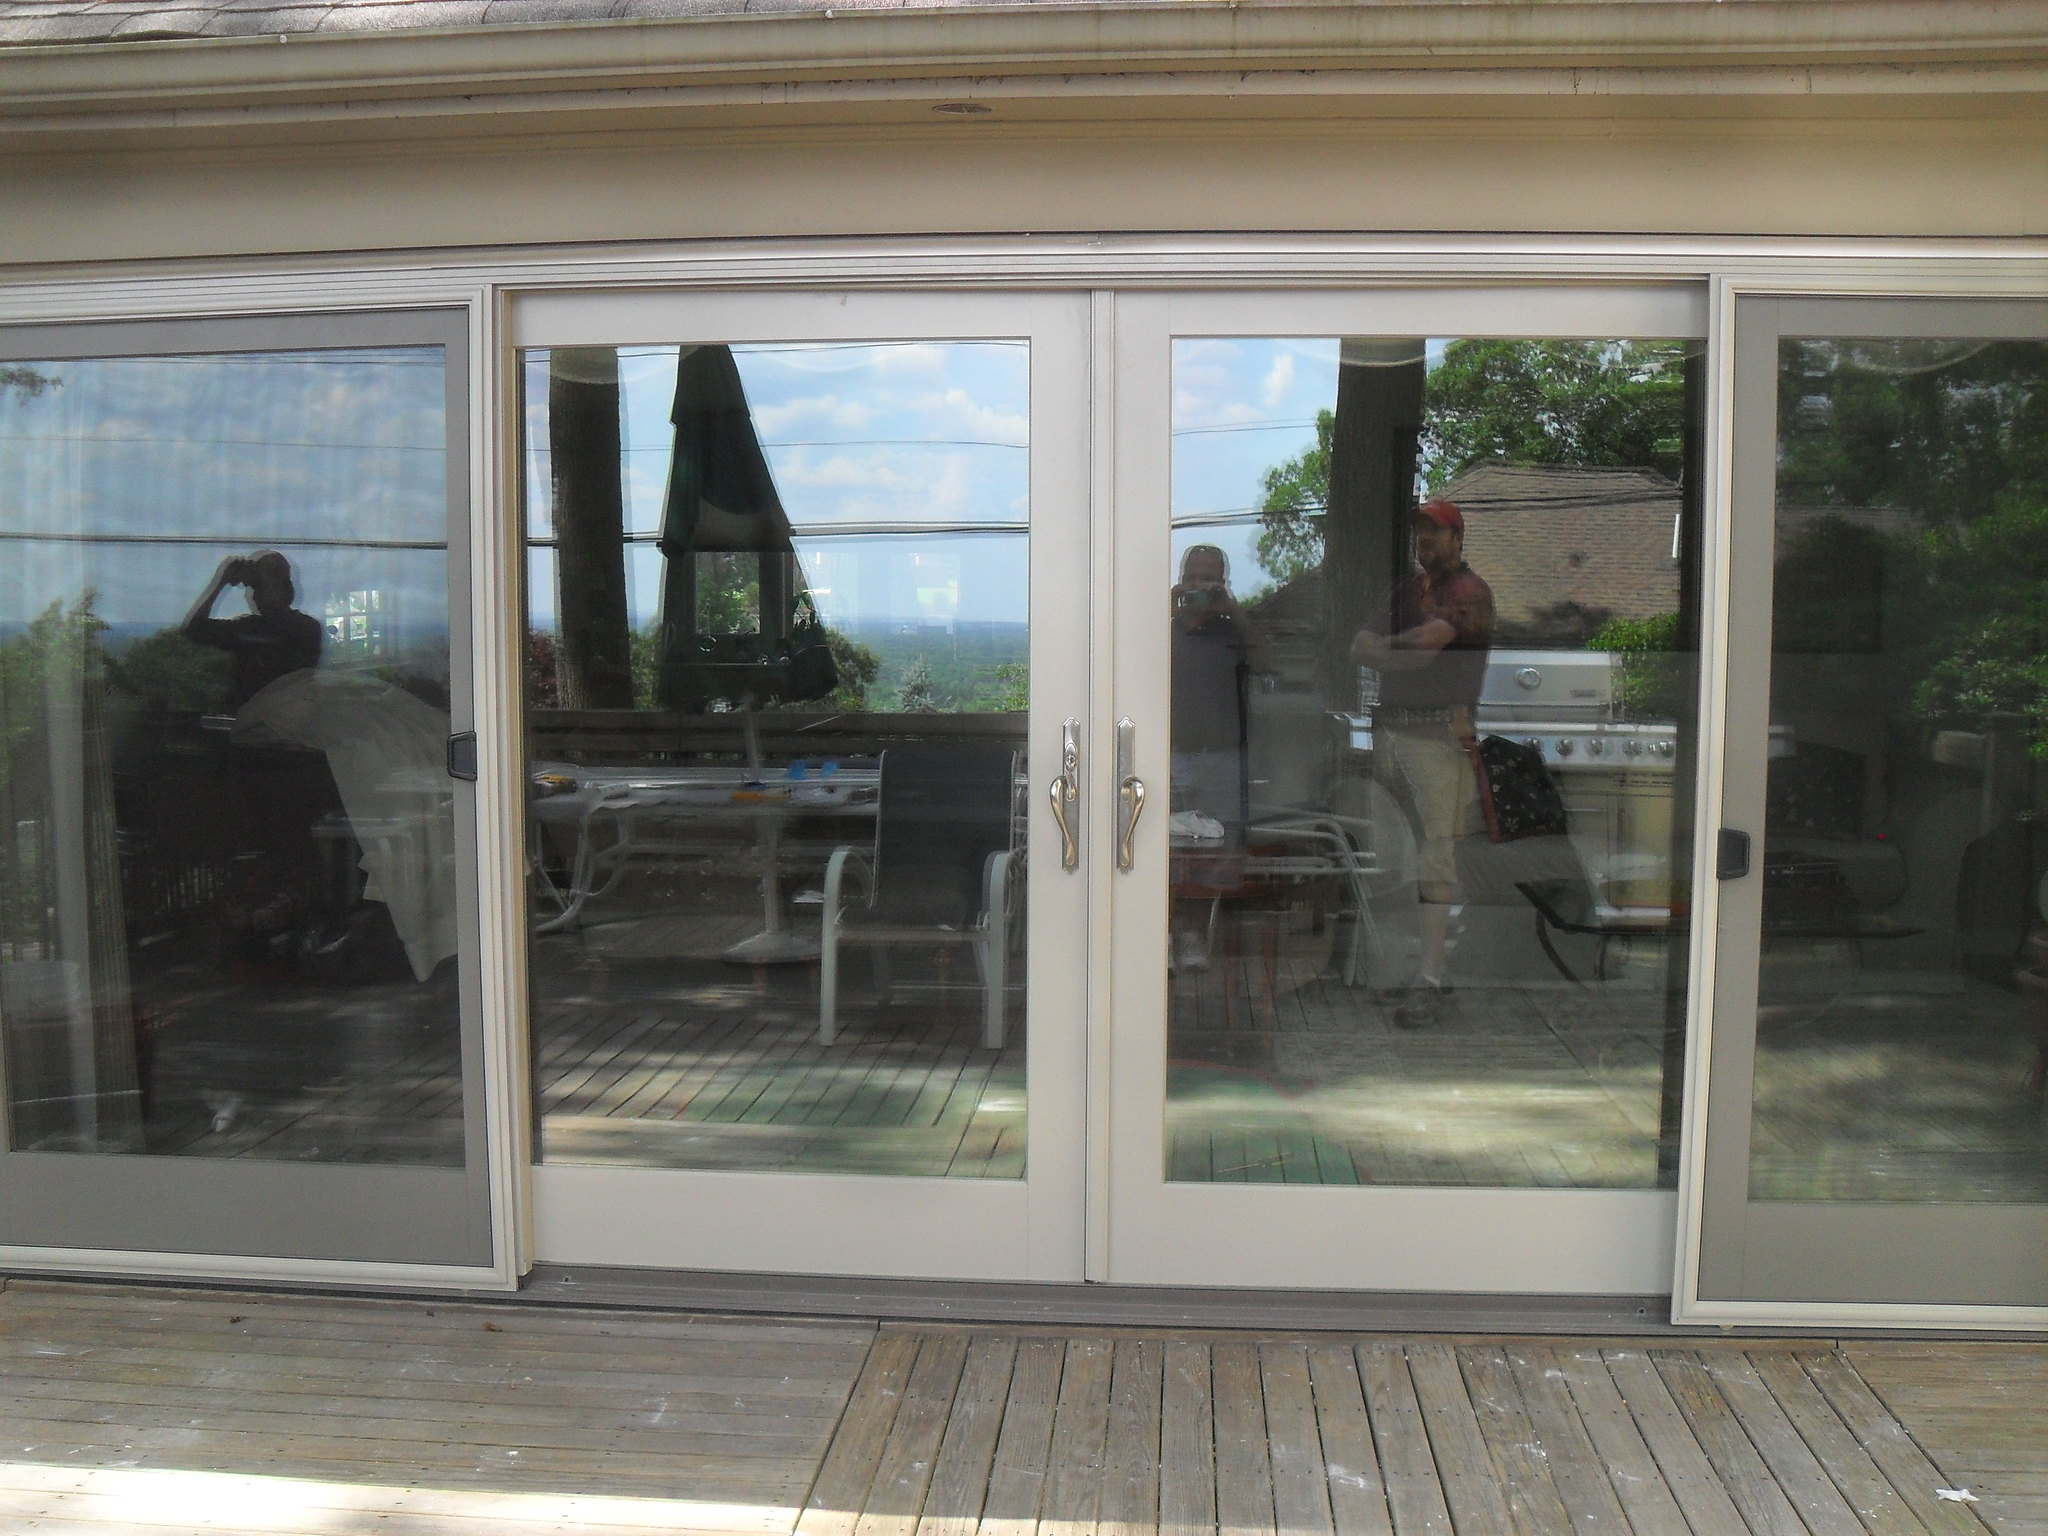 1536 #4D6B7E JELD WEN 16' Sliding Patio Door JELD WEN 16' Sliding Patio  image Aluminum Clad Patio Doors 47232048